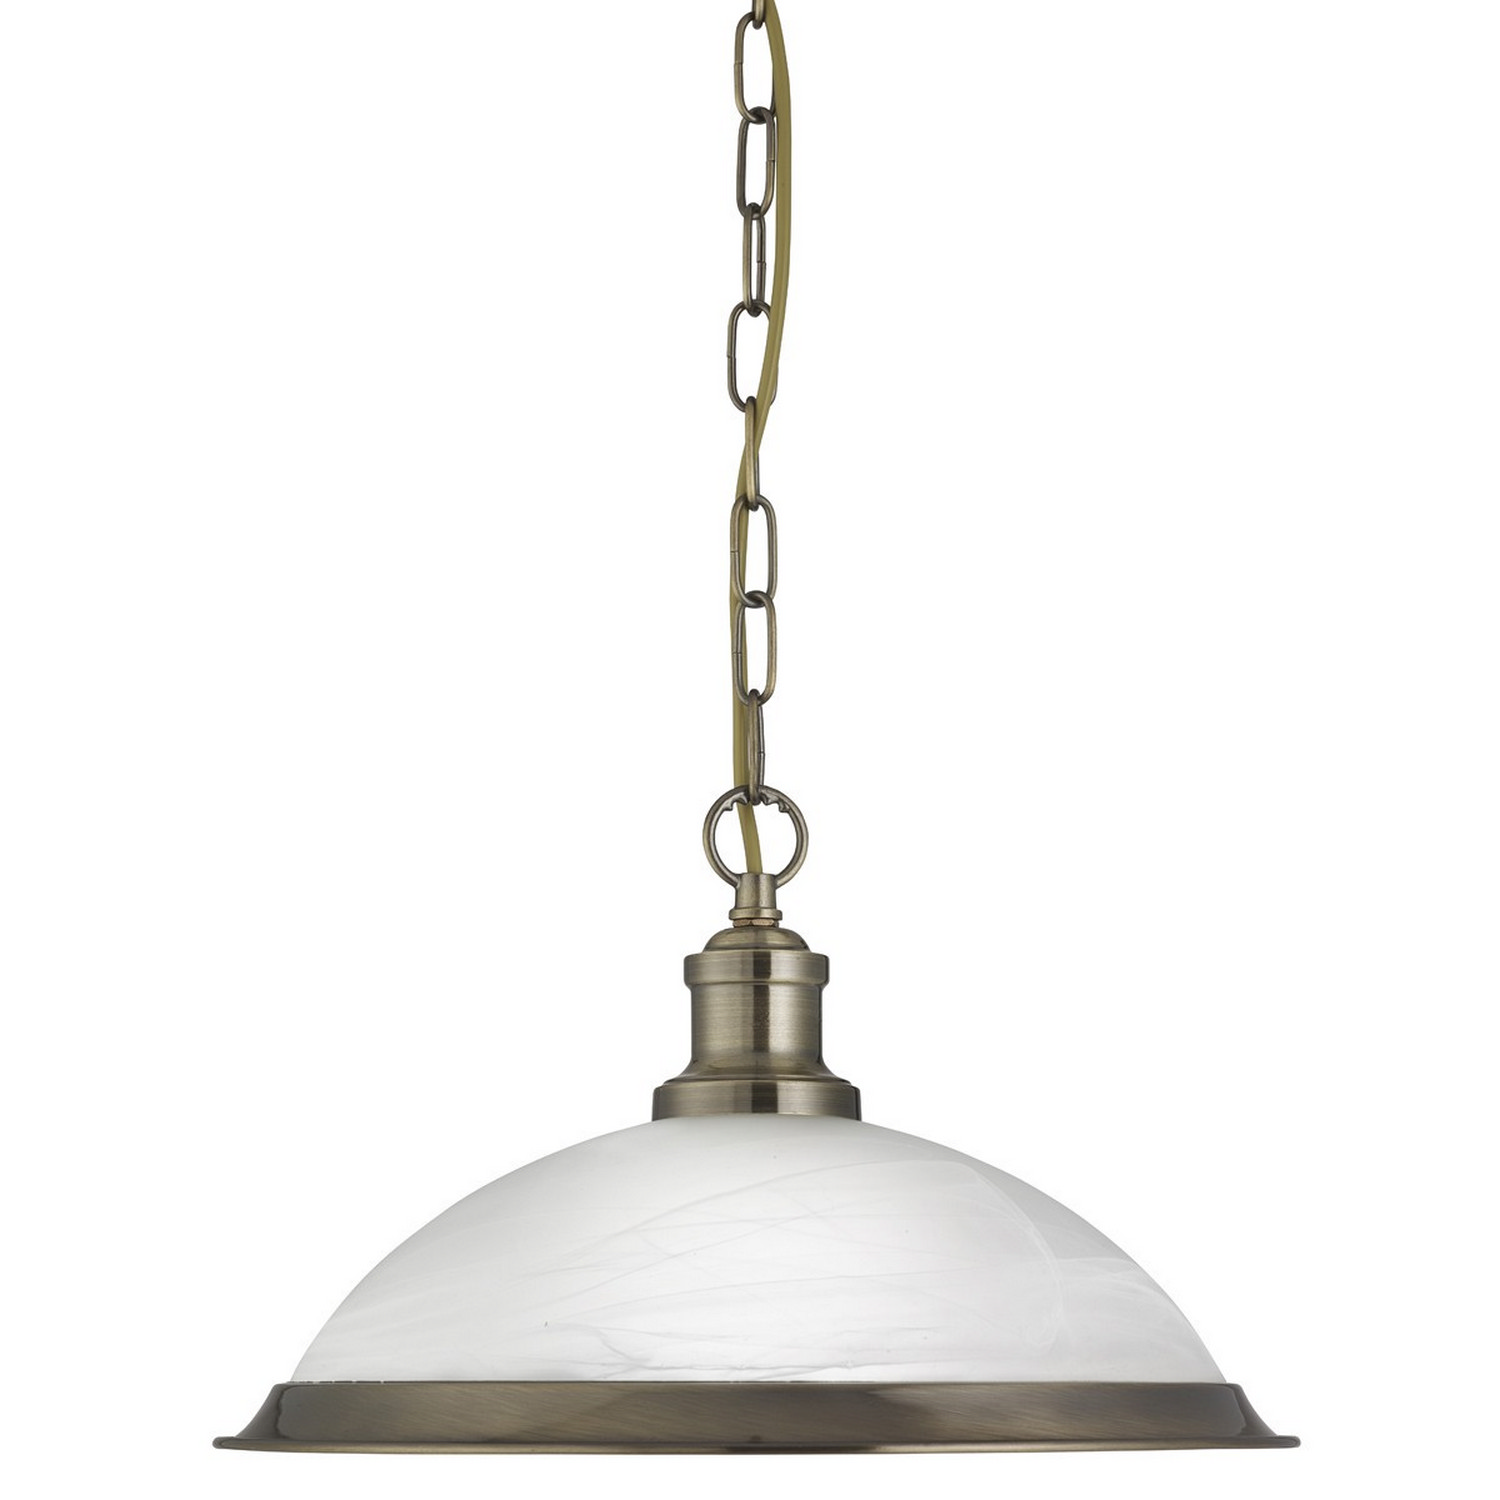 brass at lights germany chandeliers f schulz org furniture rare pendant id florian lighting z posa